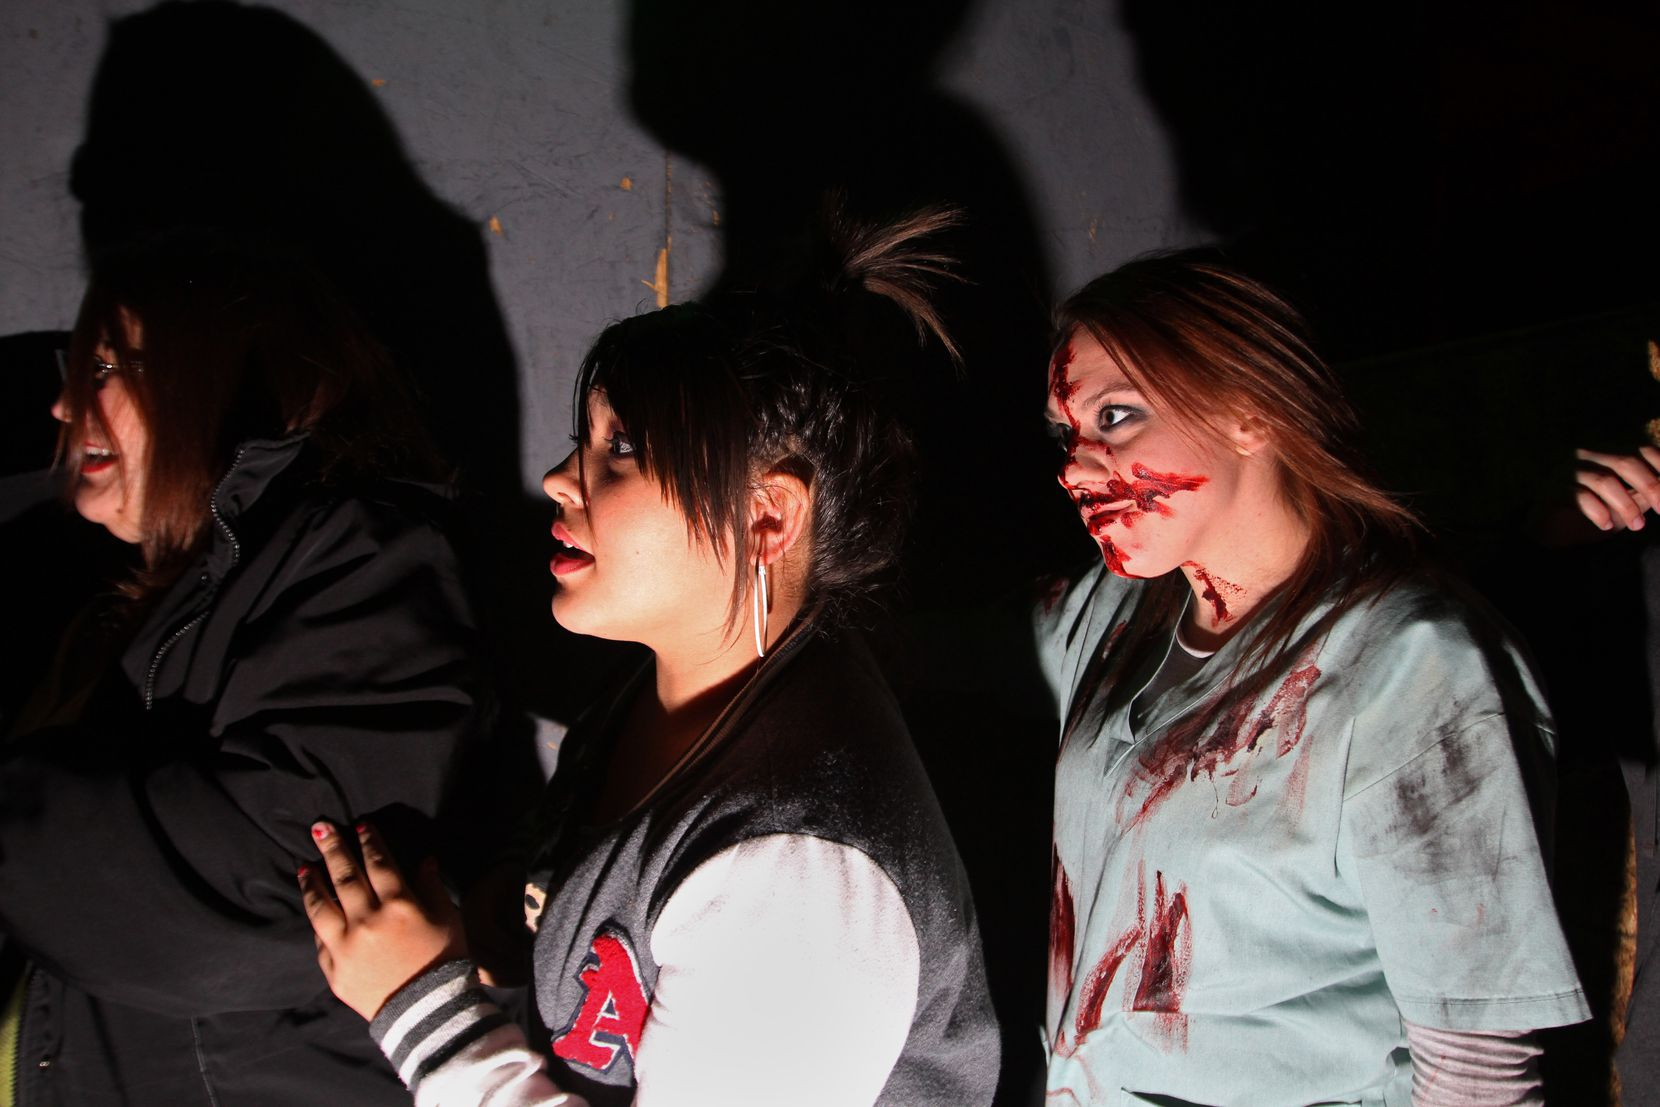 A nervous Angela Martinez (left) and Maya Martinez (center) anxiously look for what awaits them while followed by a haunted house actor, inside the Moxley Manor Haunted House in Bedford in 2012.